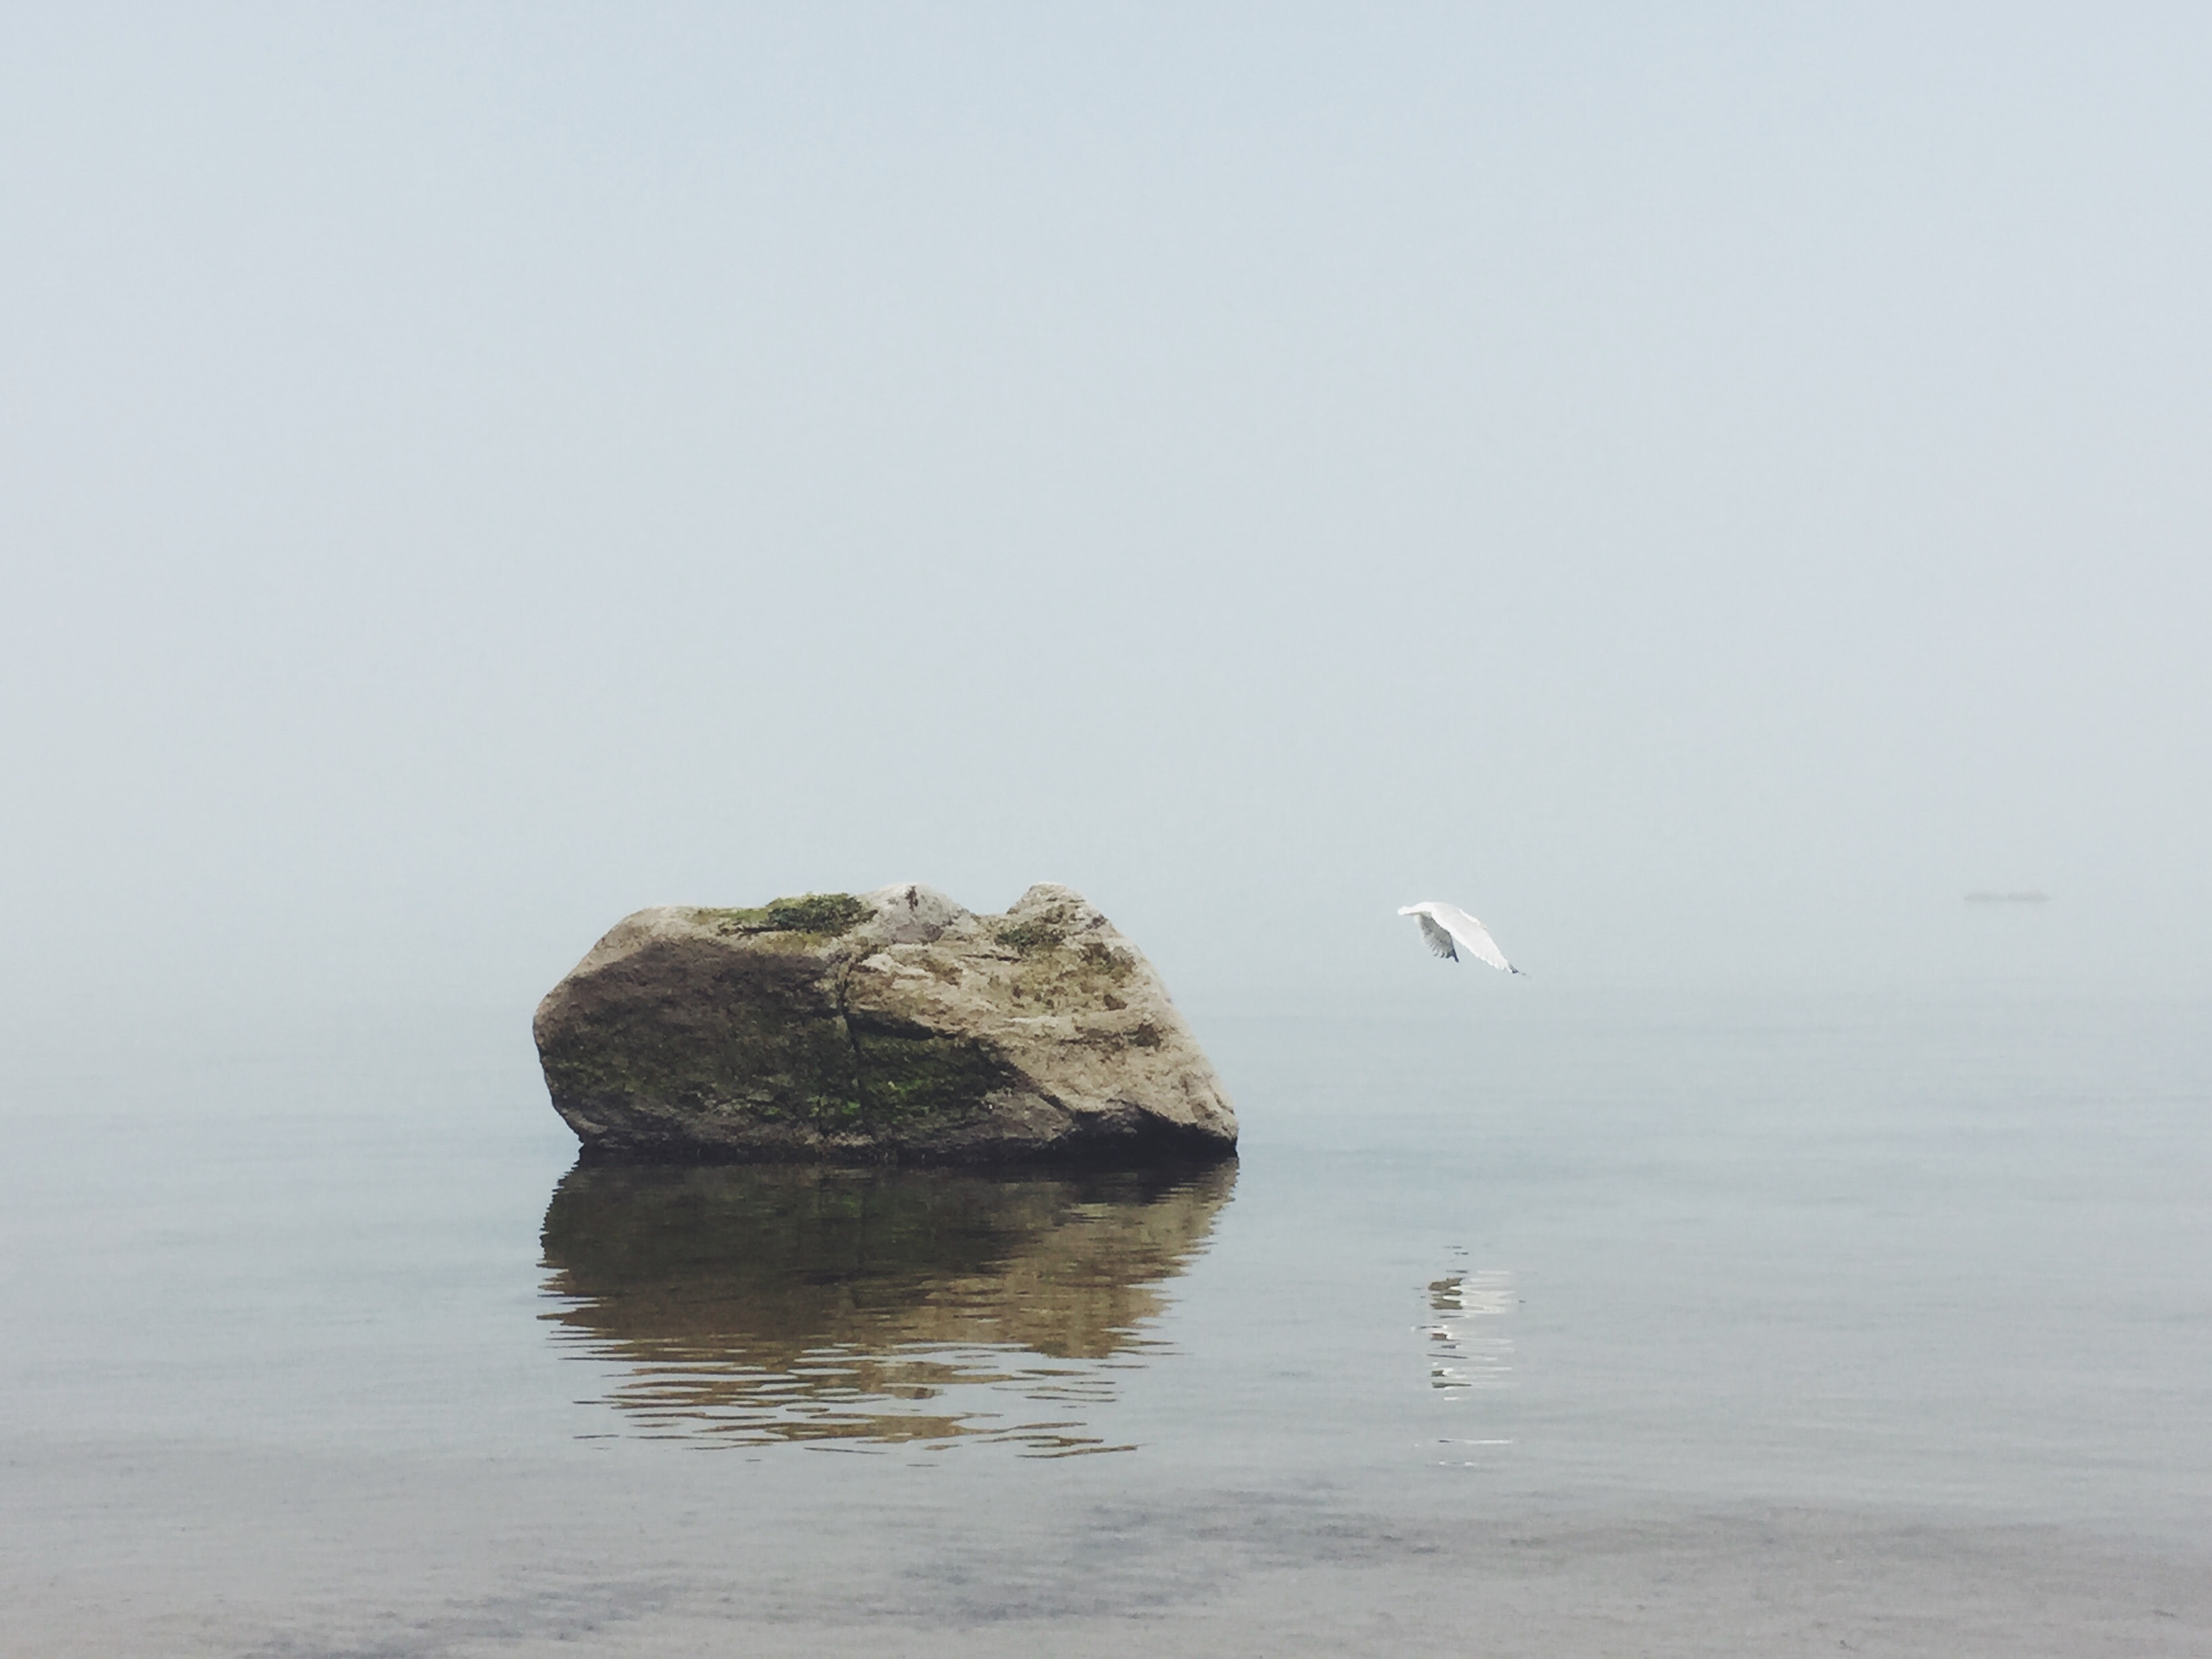 Seagull flies off of lone boulder on a foggy seashore